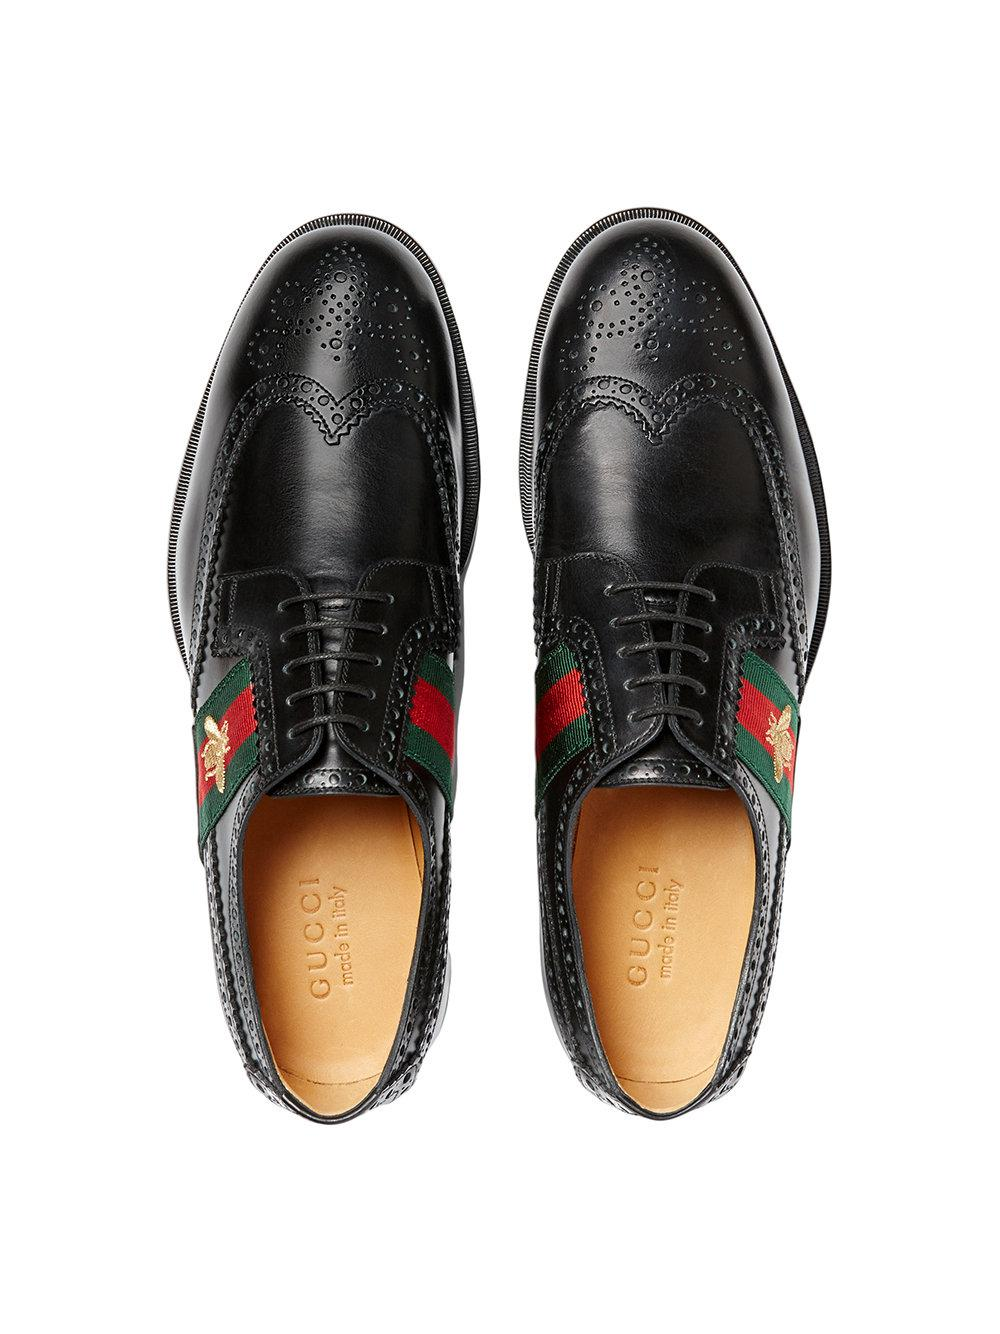 8e65d8cba Gucci - Black Leather Lace-up With Bee Web for Men - Lyst. View fullscreen